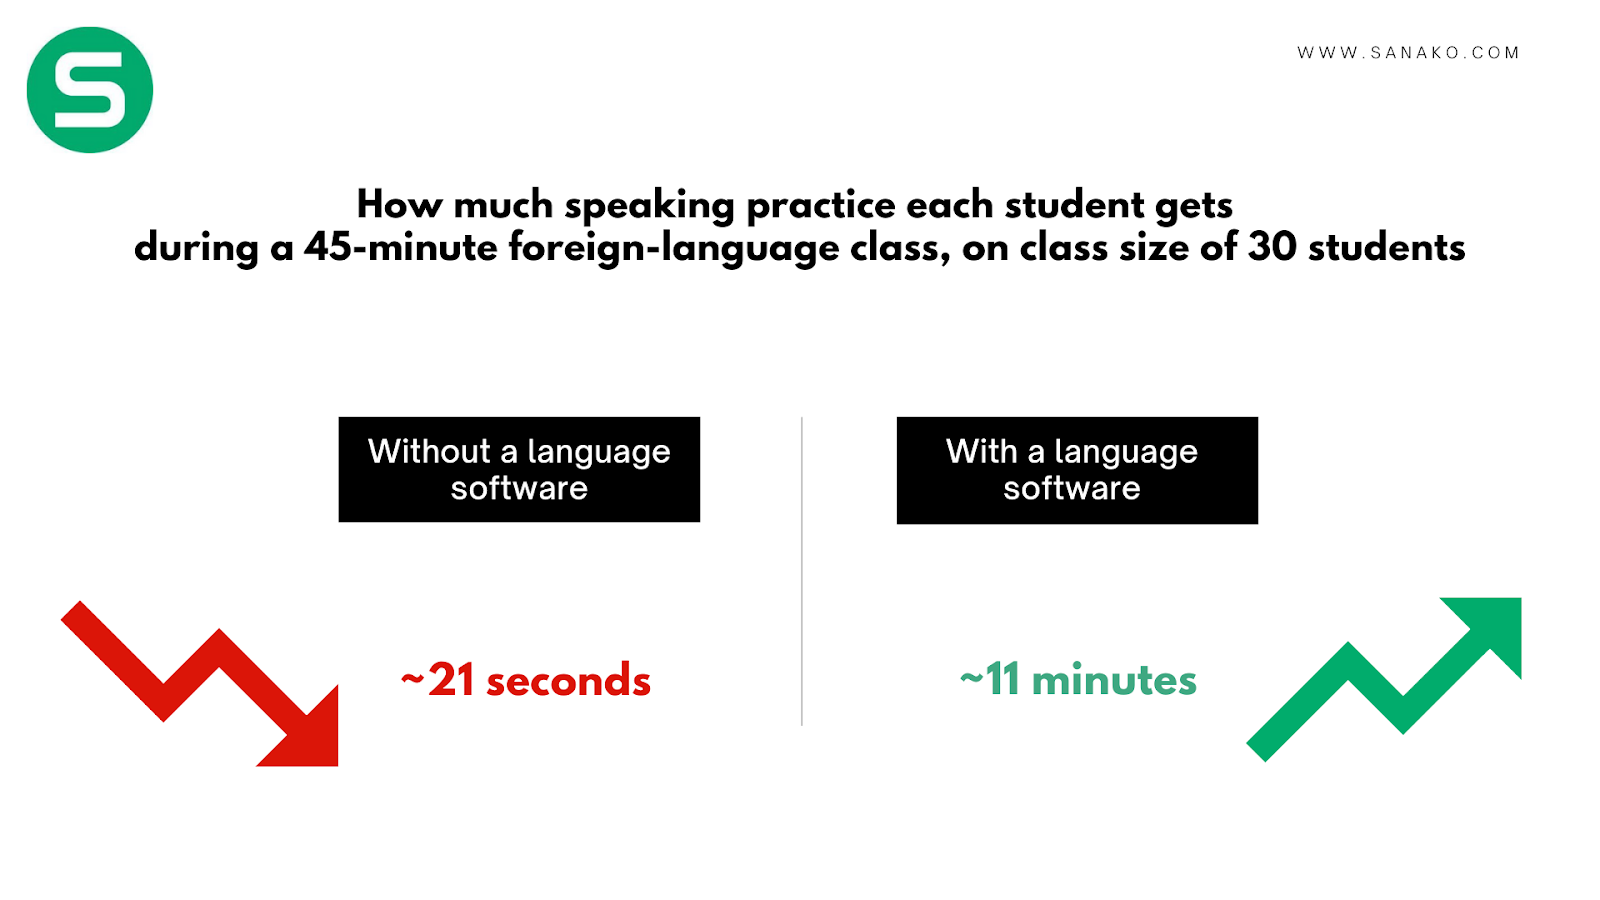 language teaching software inceares time spent on speaking activities